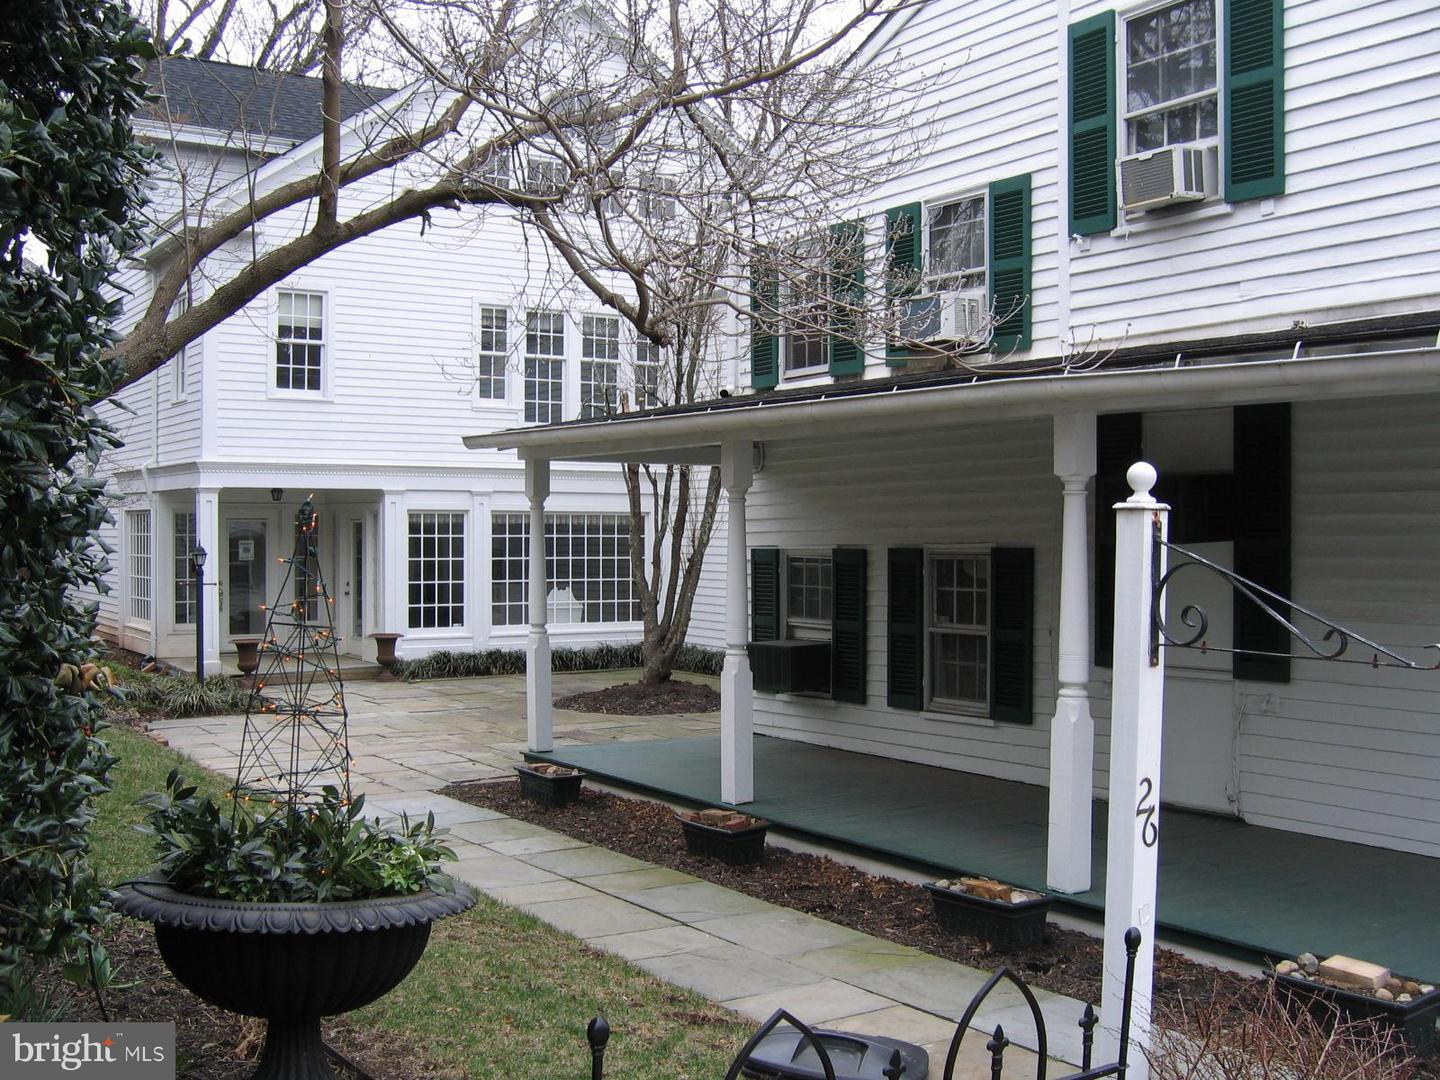 Other Residential for Rent at 26 King St N Leesburg, Virginia 20176 United States